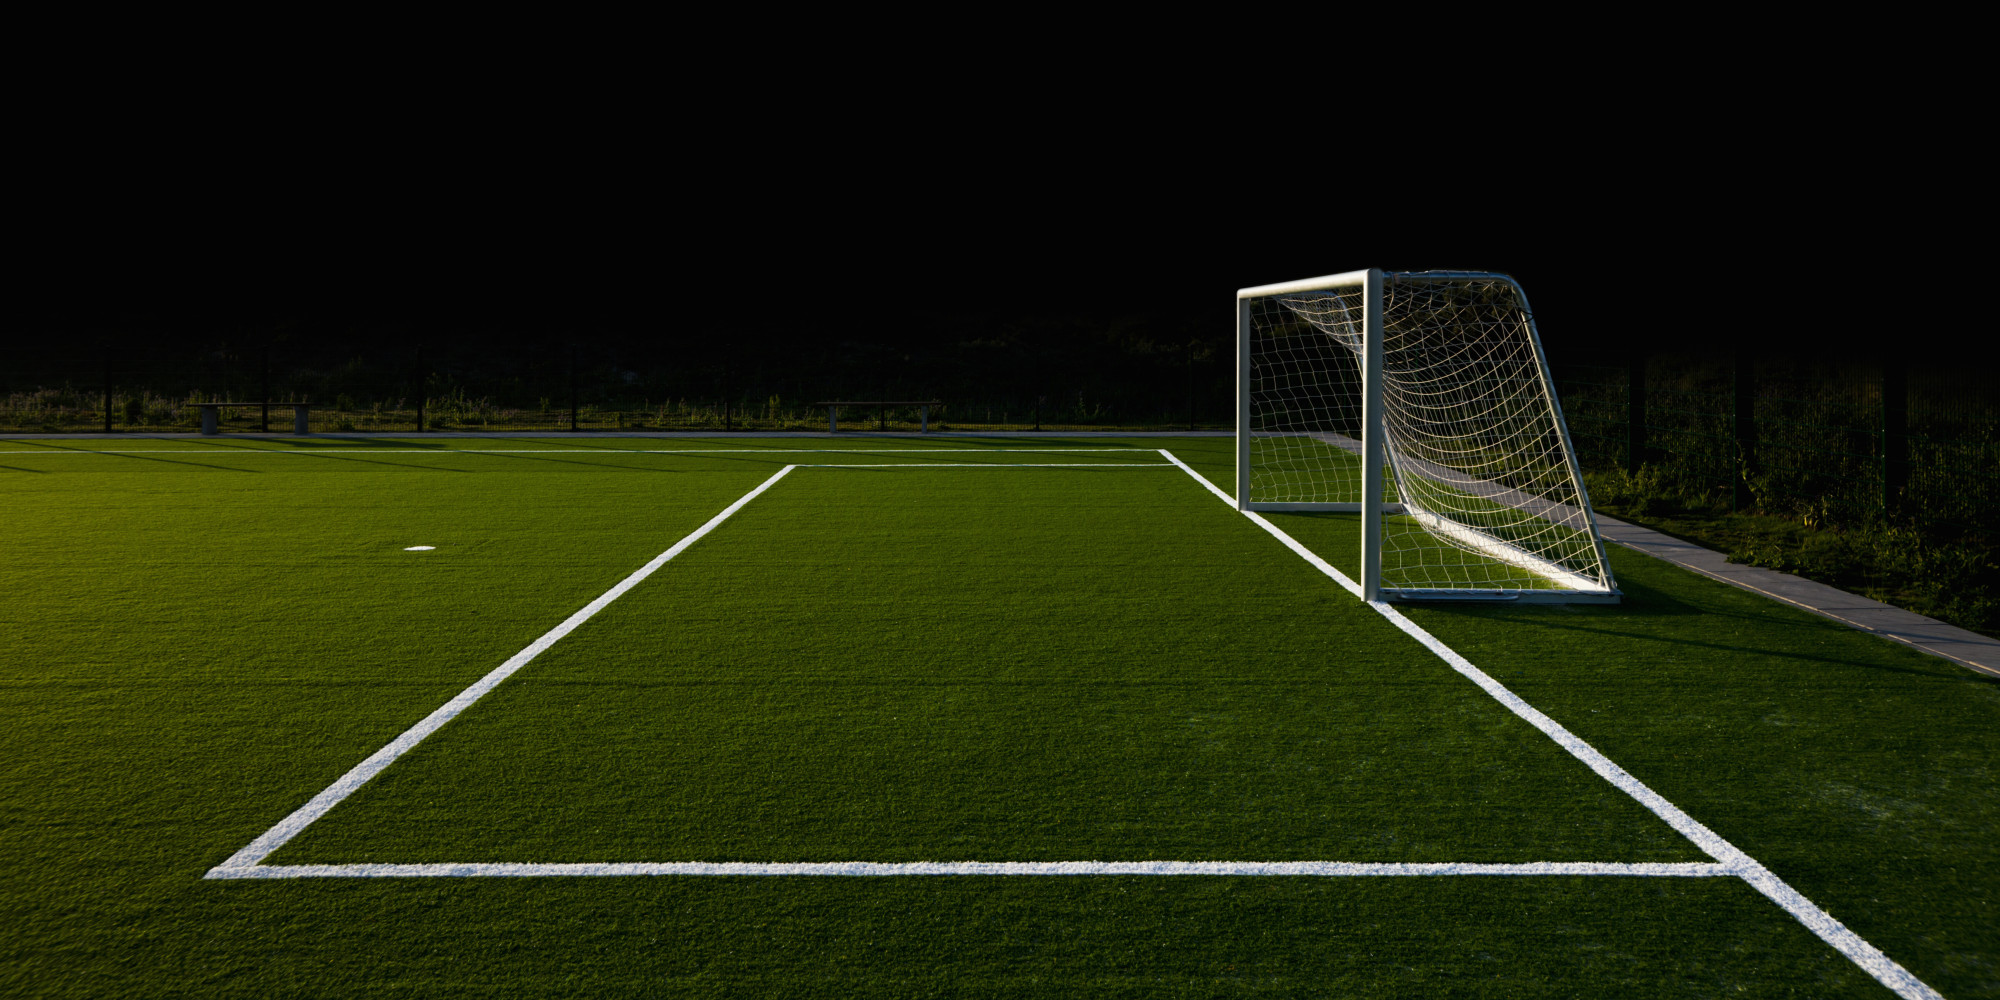 how to play 5 a side soccer